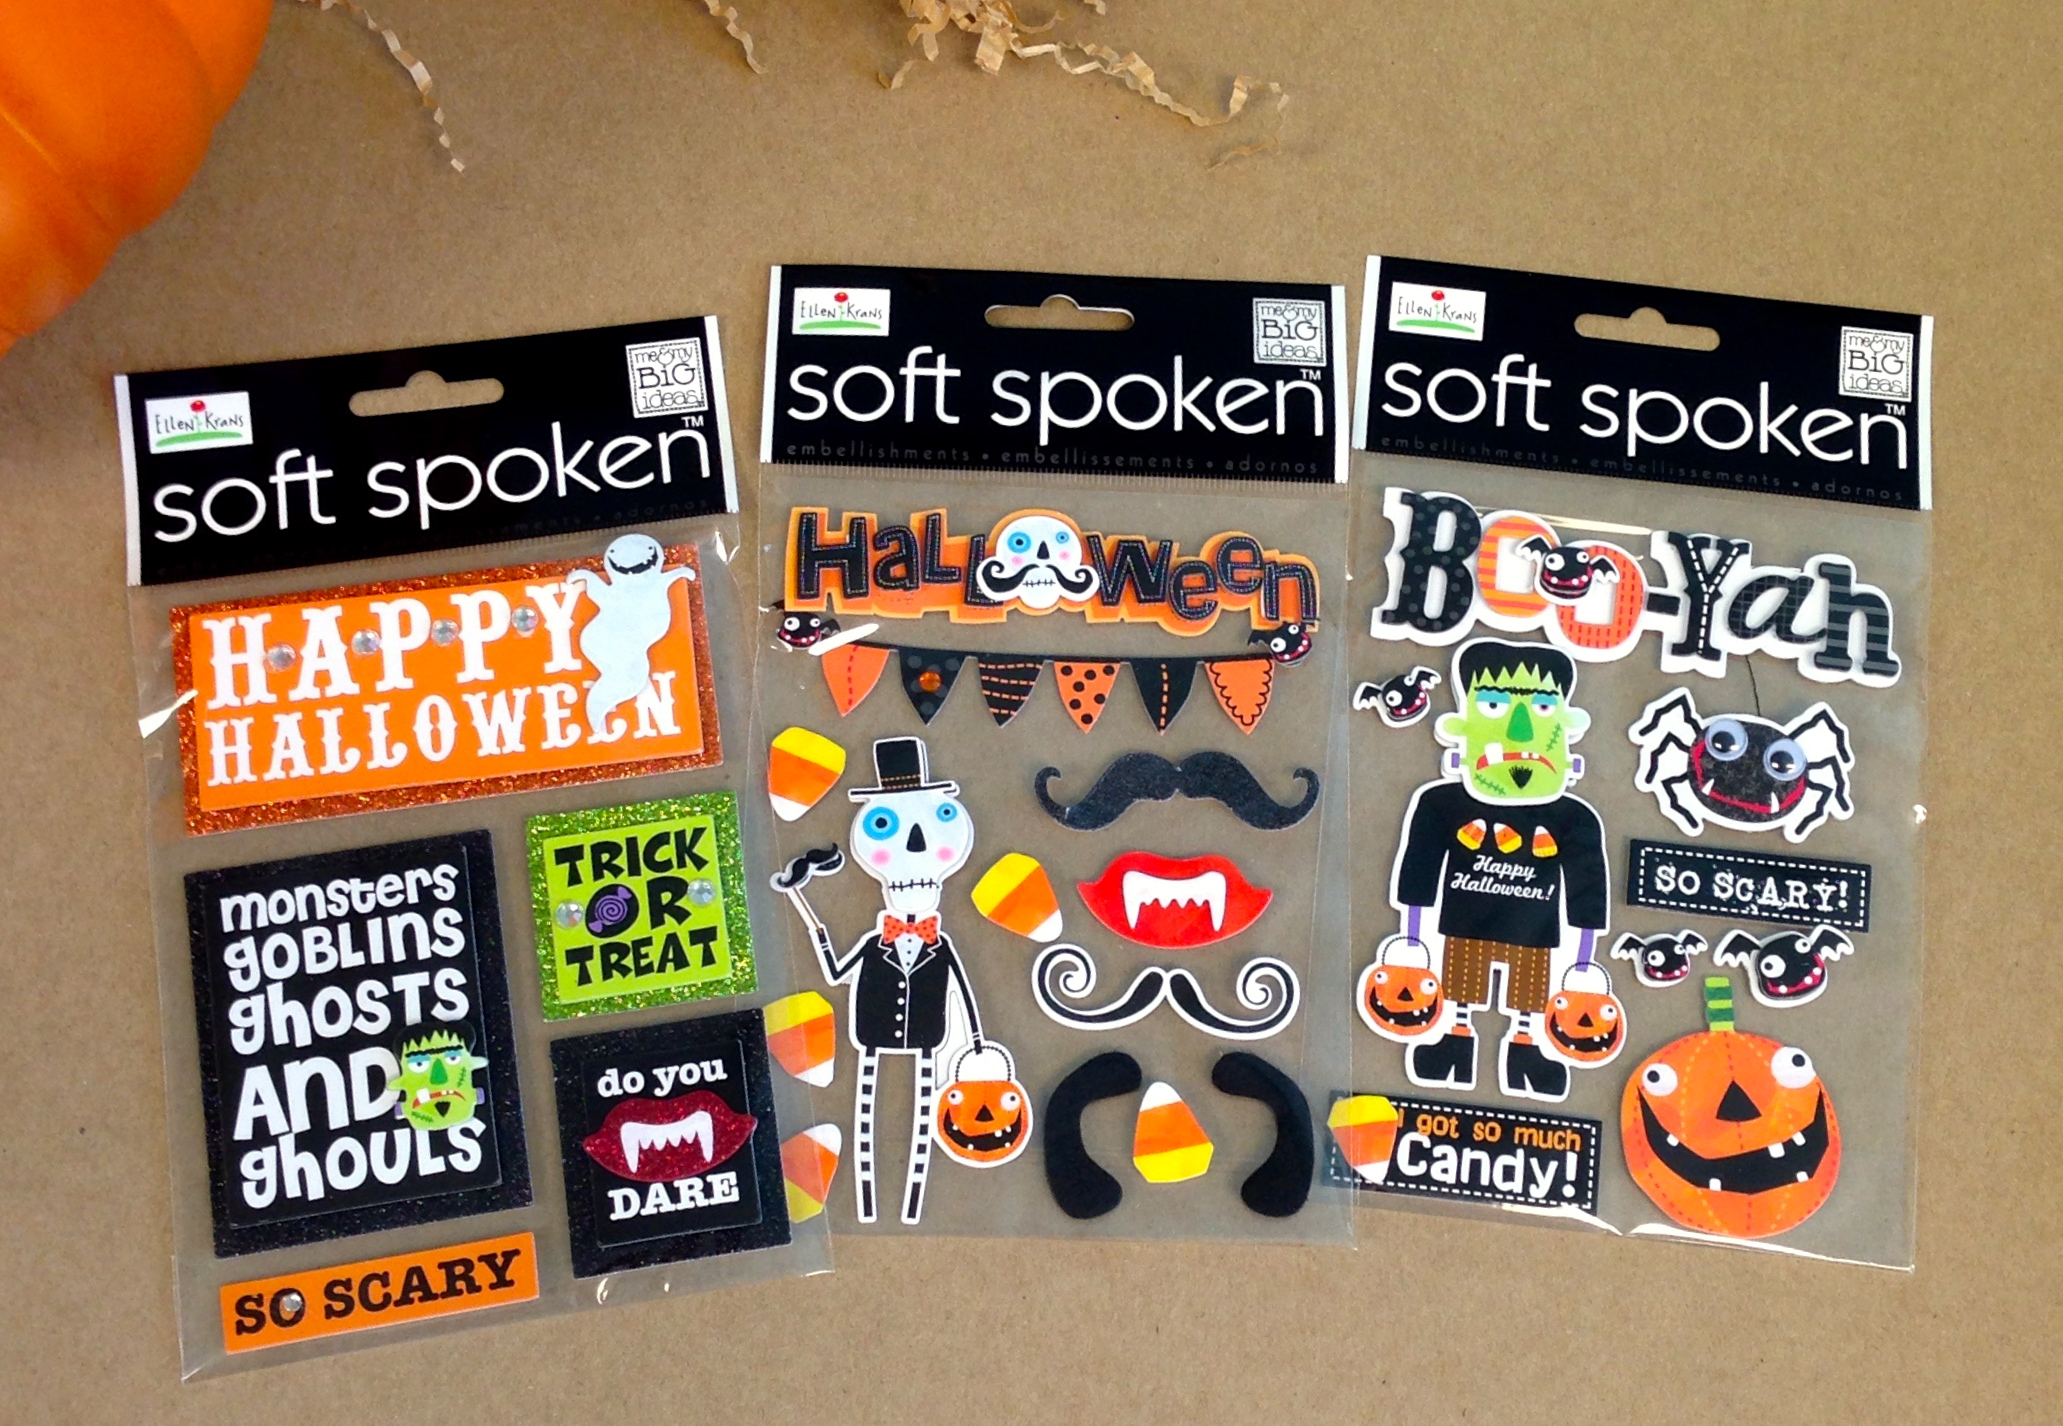 Halloween soft spoken mambi embellishments available at michaels stores.